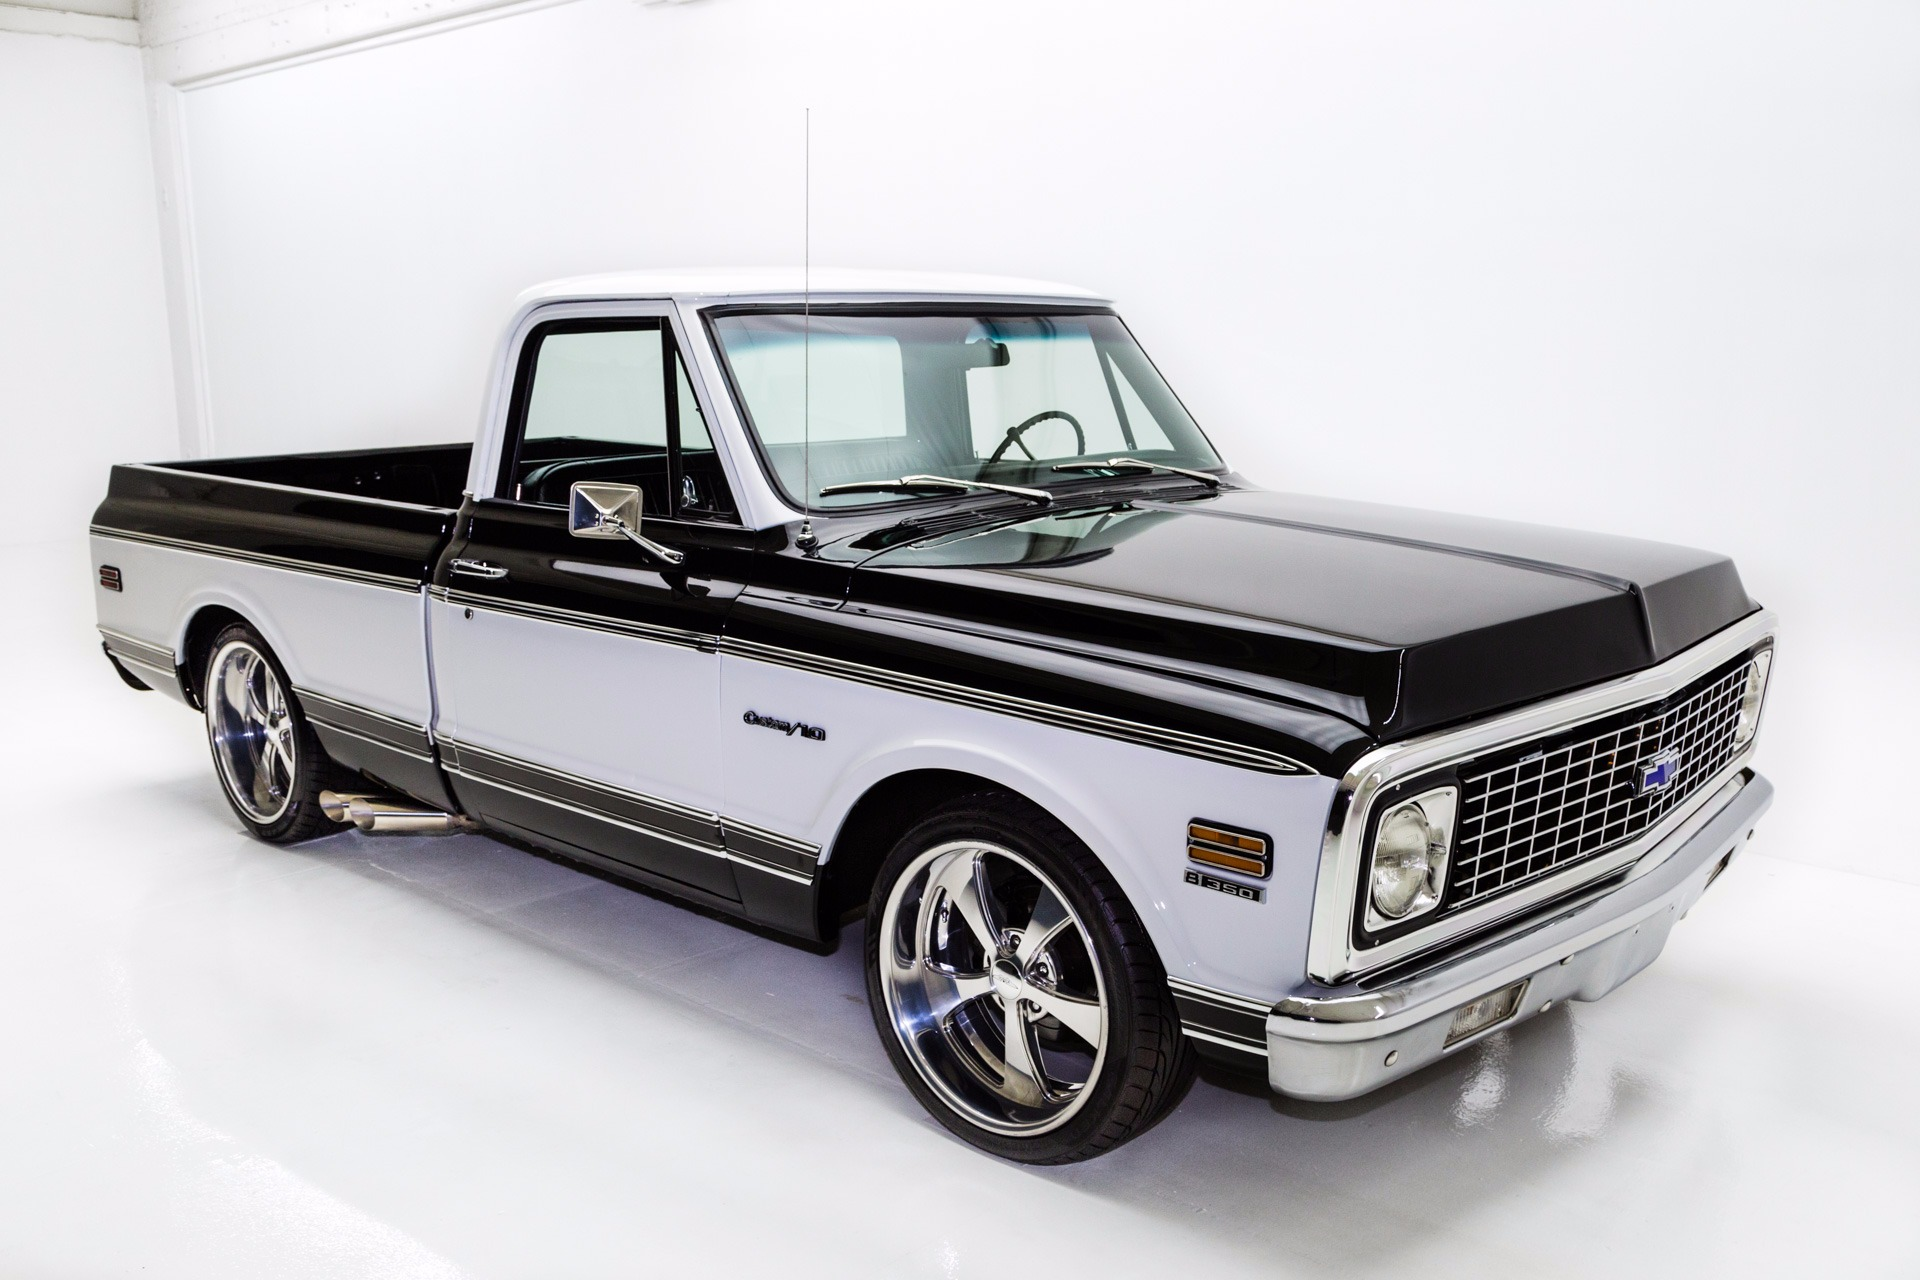 For Sale Used 1972 Chevrolet C10 Shortbox Fleetside | American Dream Machines Des Moines IA 50309